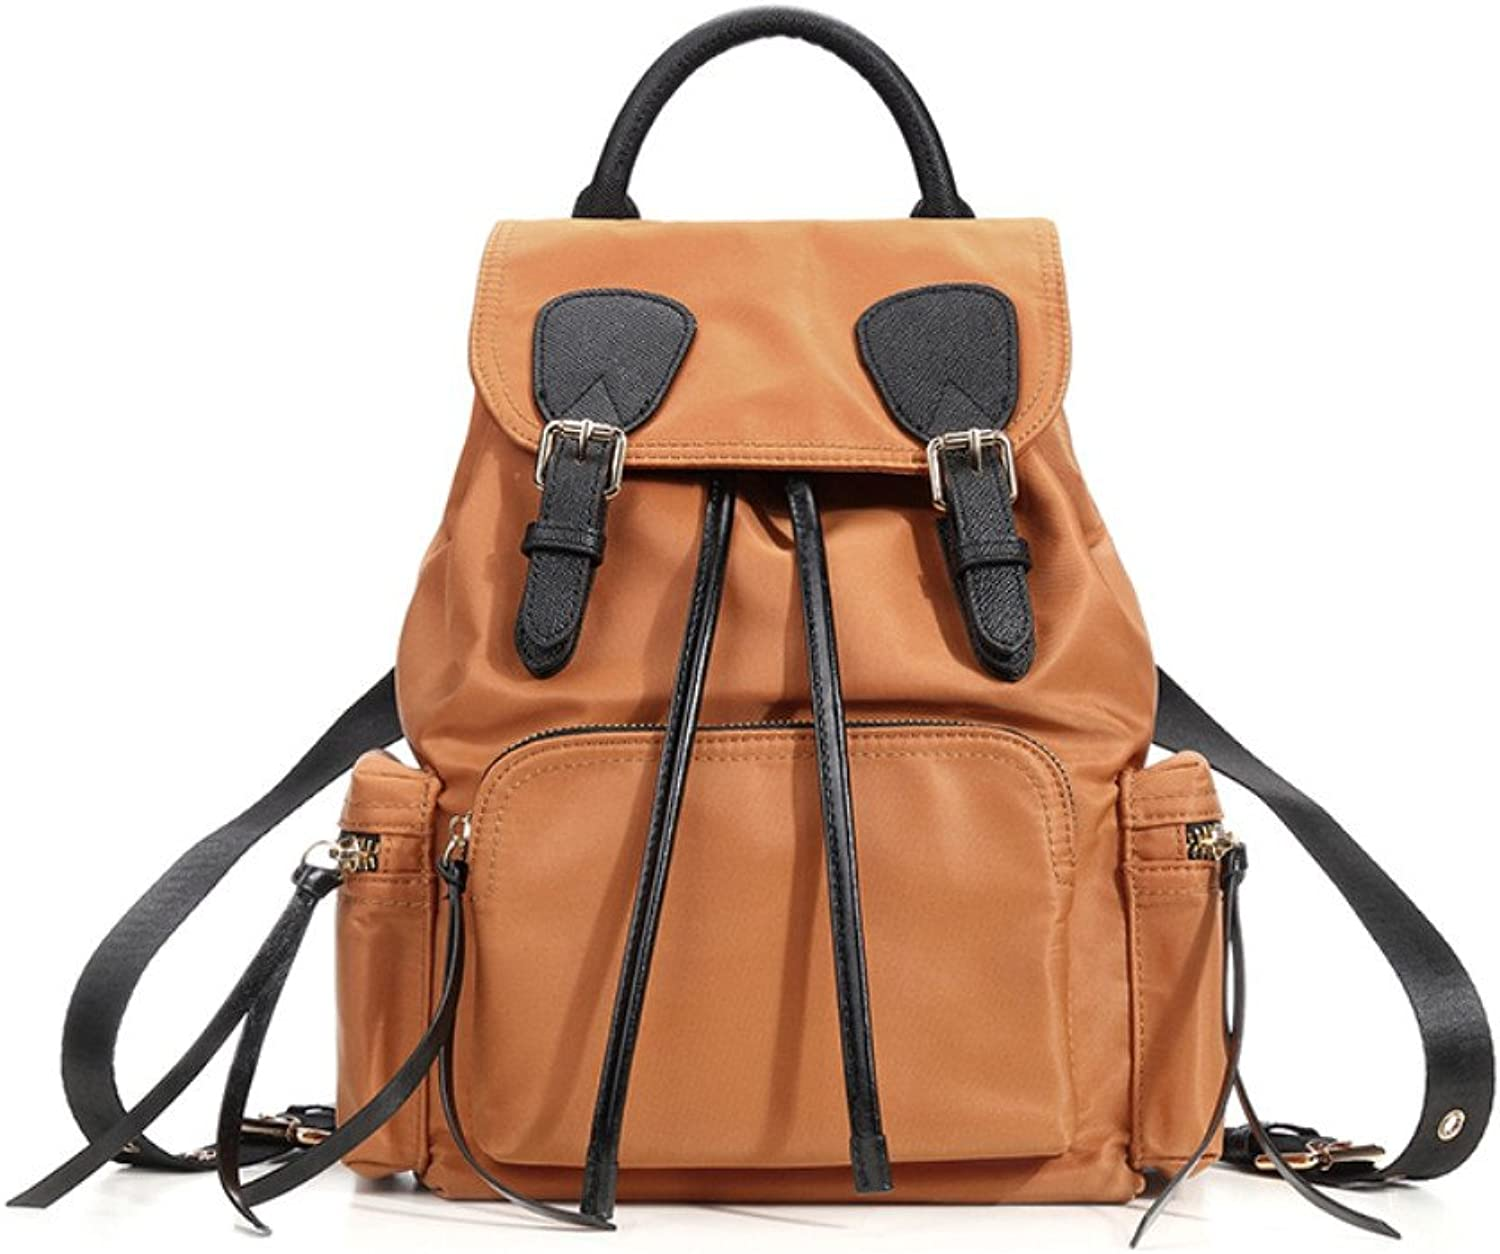 Backpack Female All-Match Oxford Cloth Mini Backpack Fashion Leisure Travel Bag,Brown